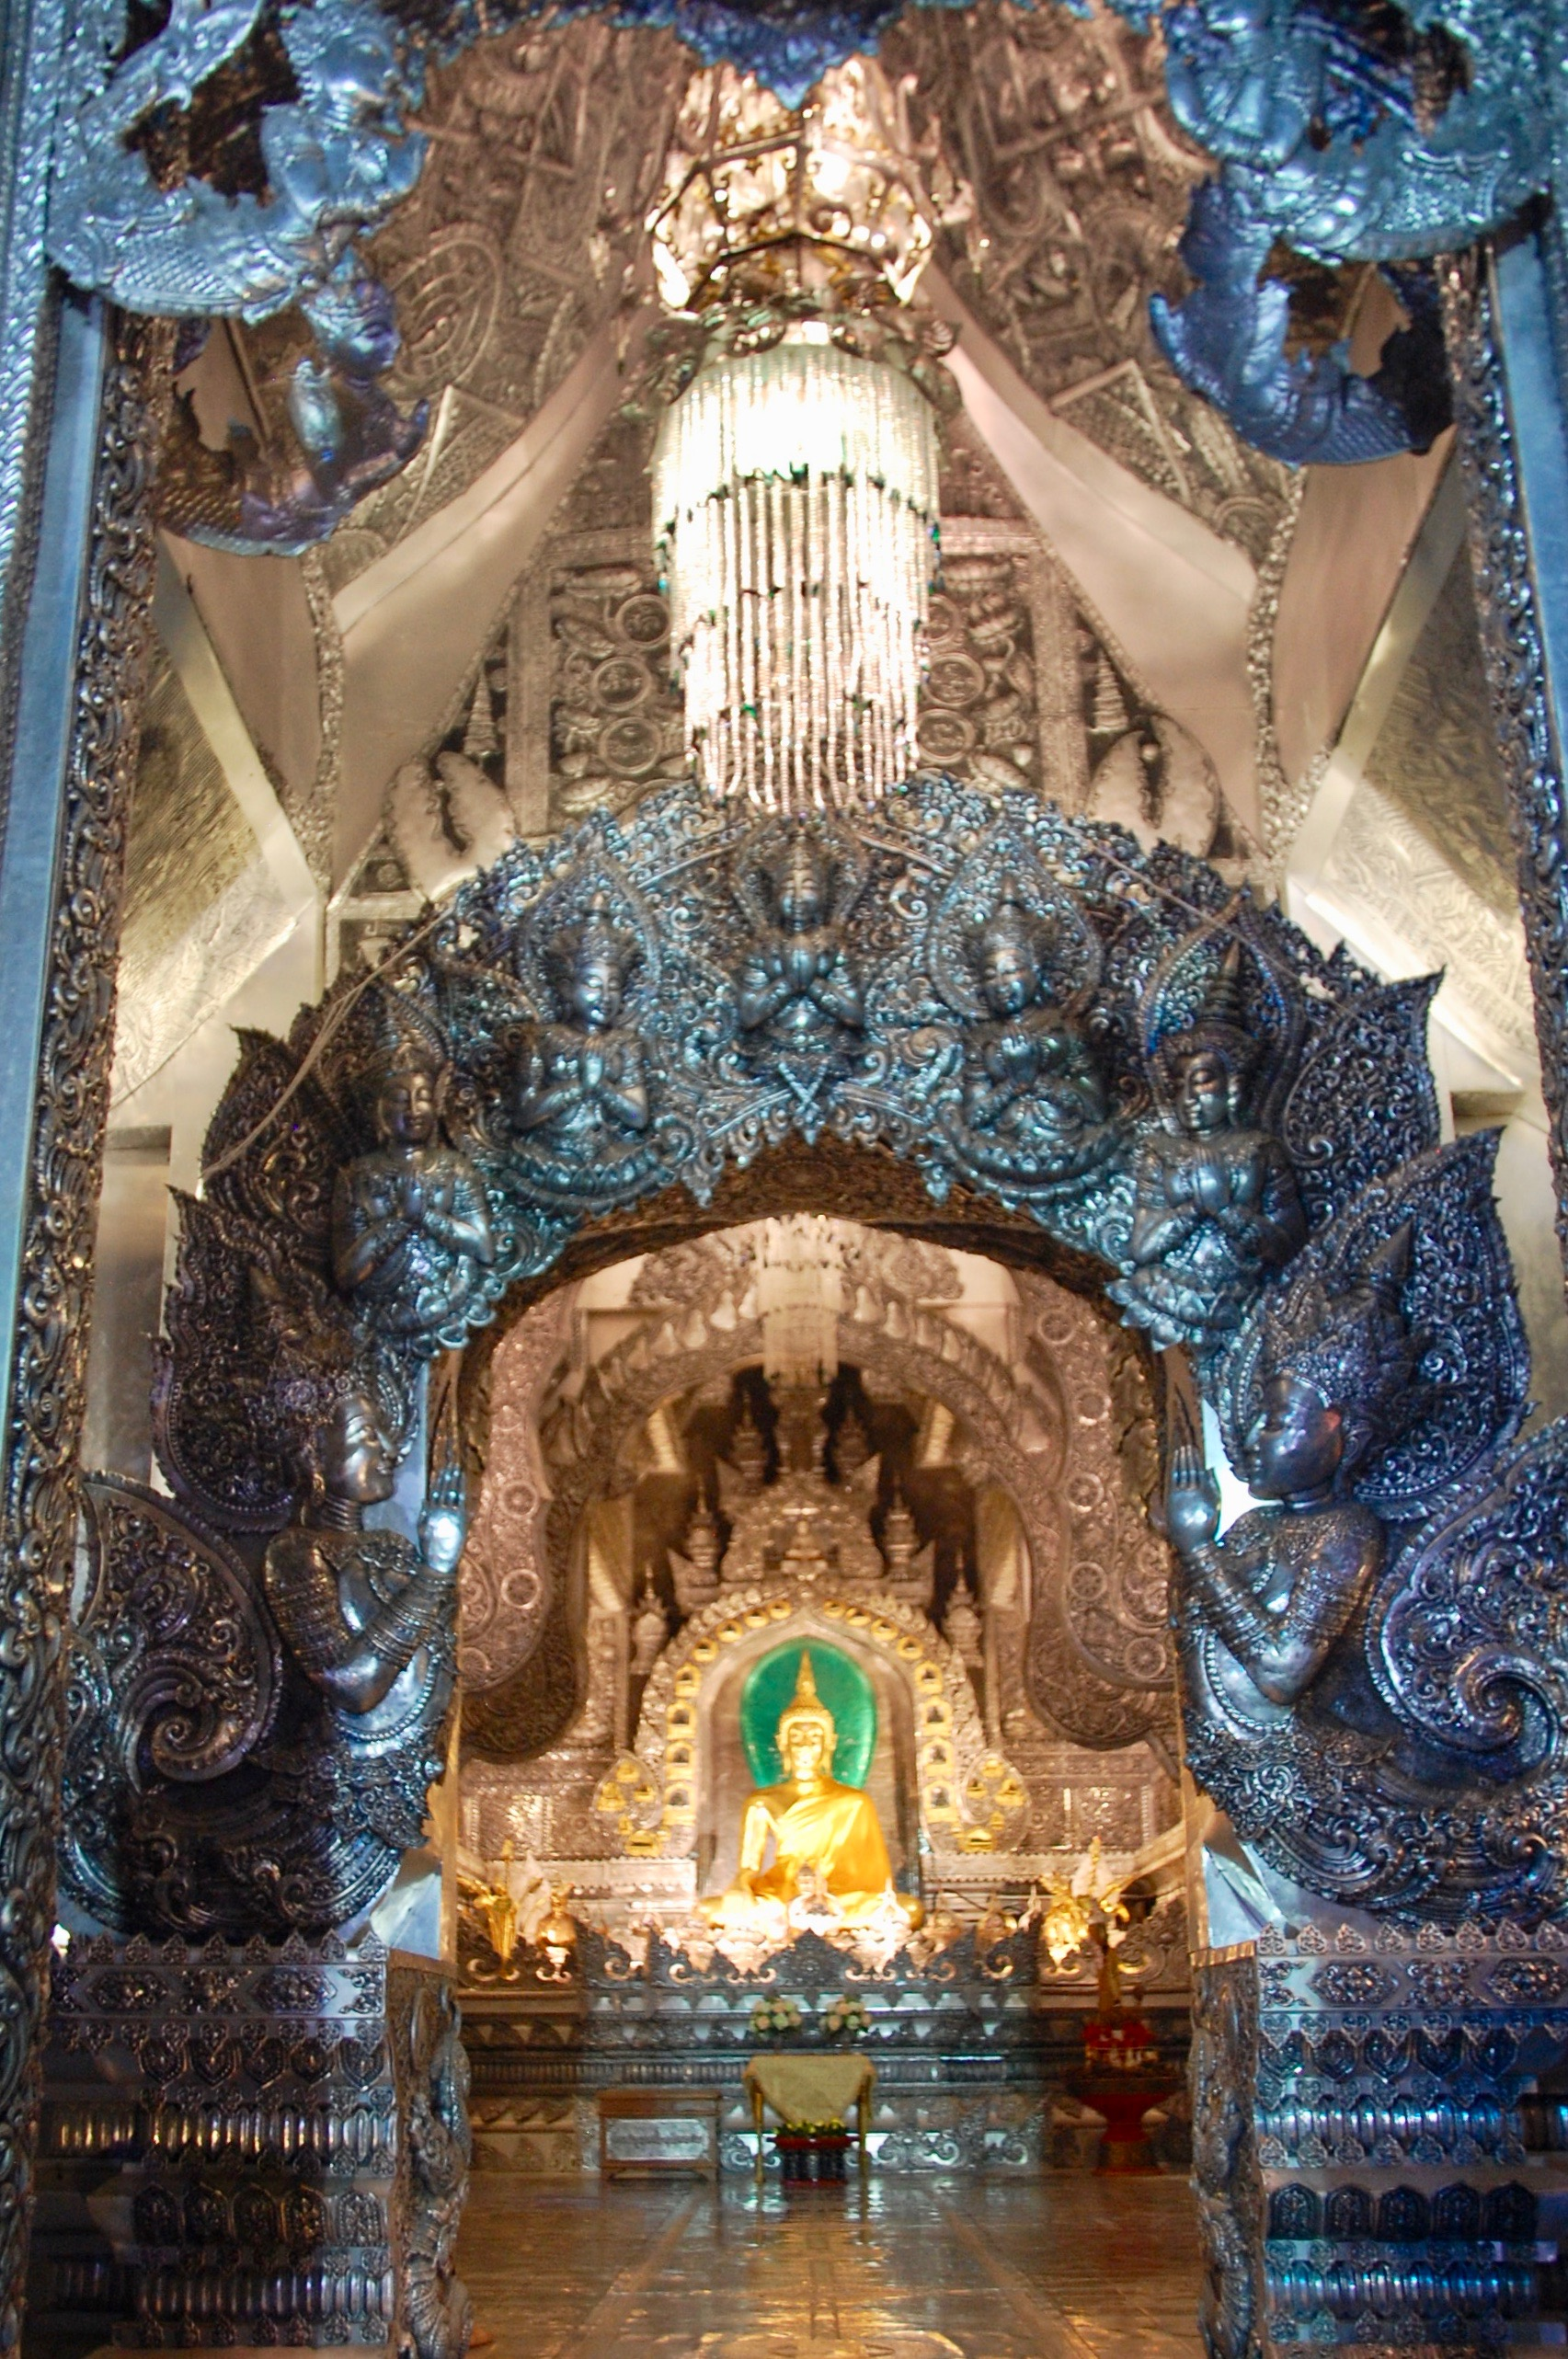 Inner sanctum of Wat Sri Suphan (Old City, Chiang Mai)